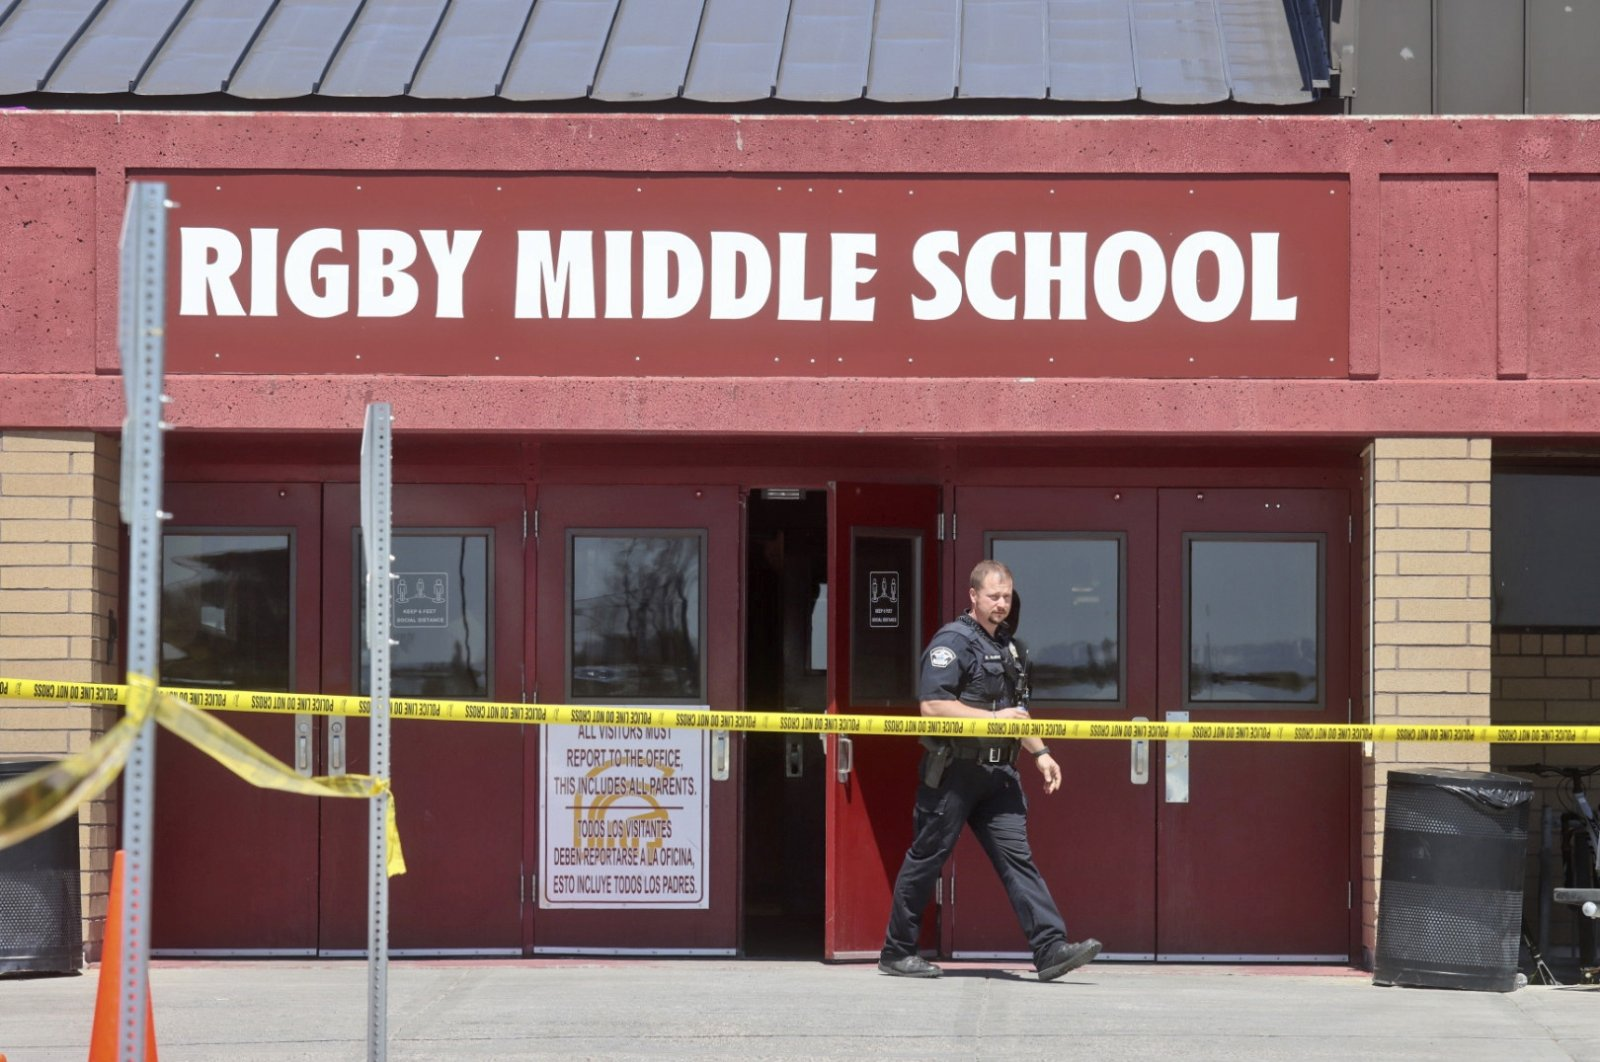 A police officer walks out of Rigby Middle School following a shooting there earlier, in Rigby, Idaho, U.S., May 6, 2021. (AP Photo)